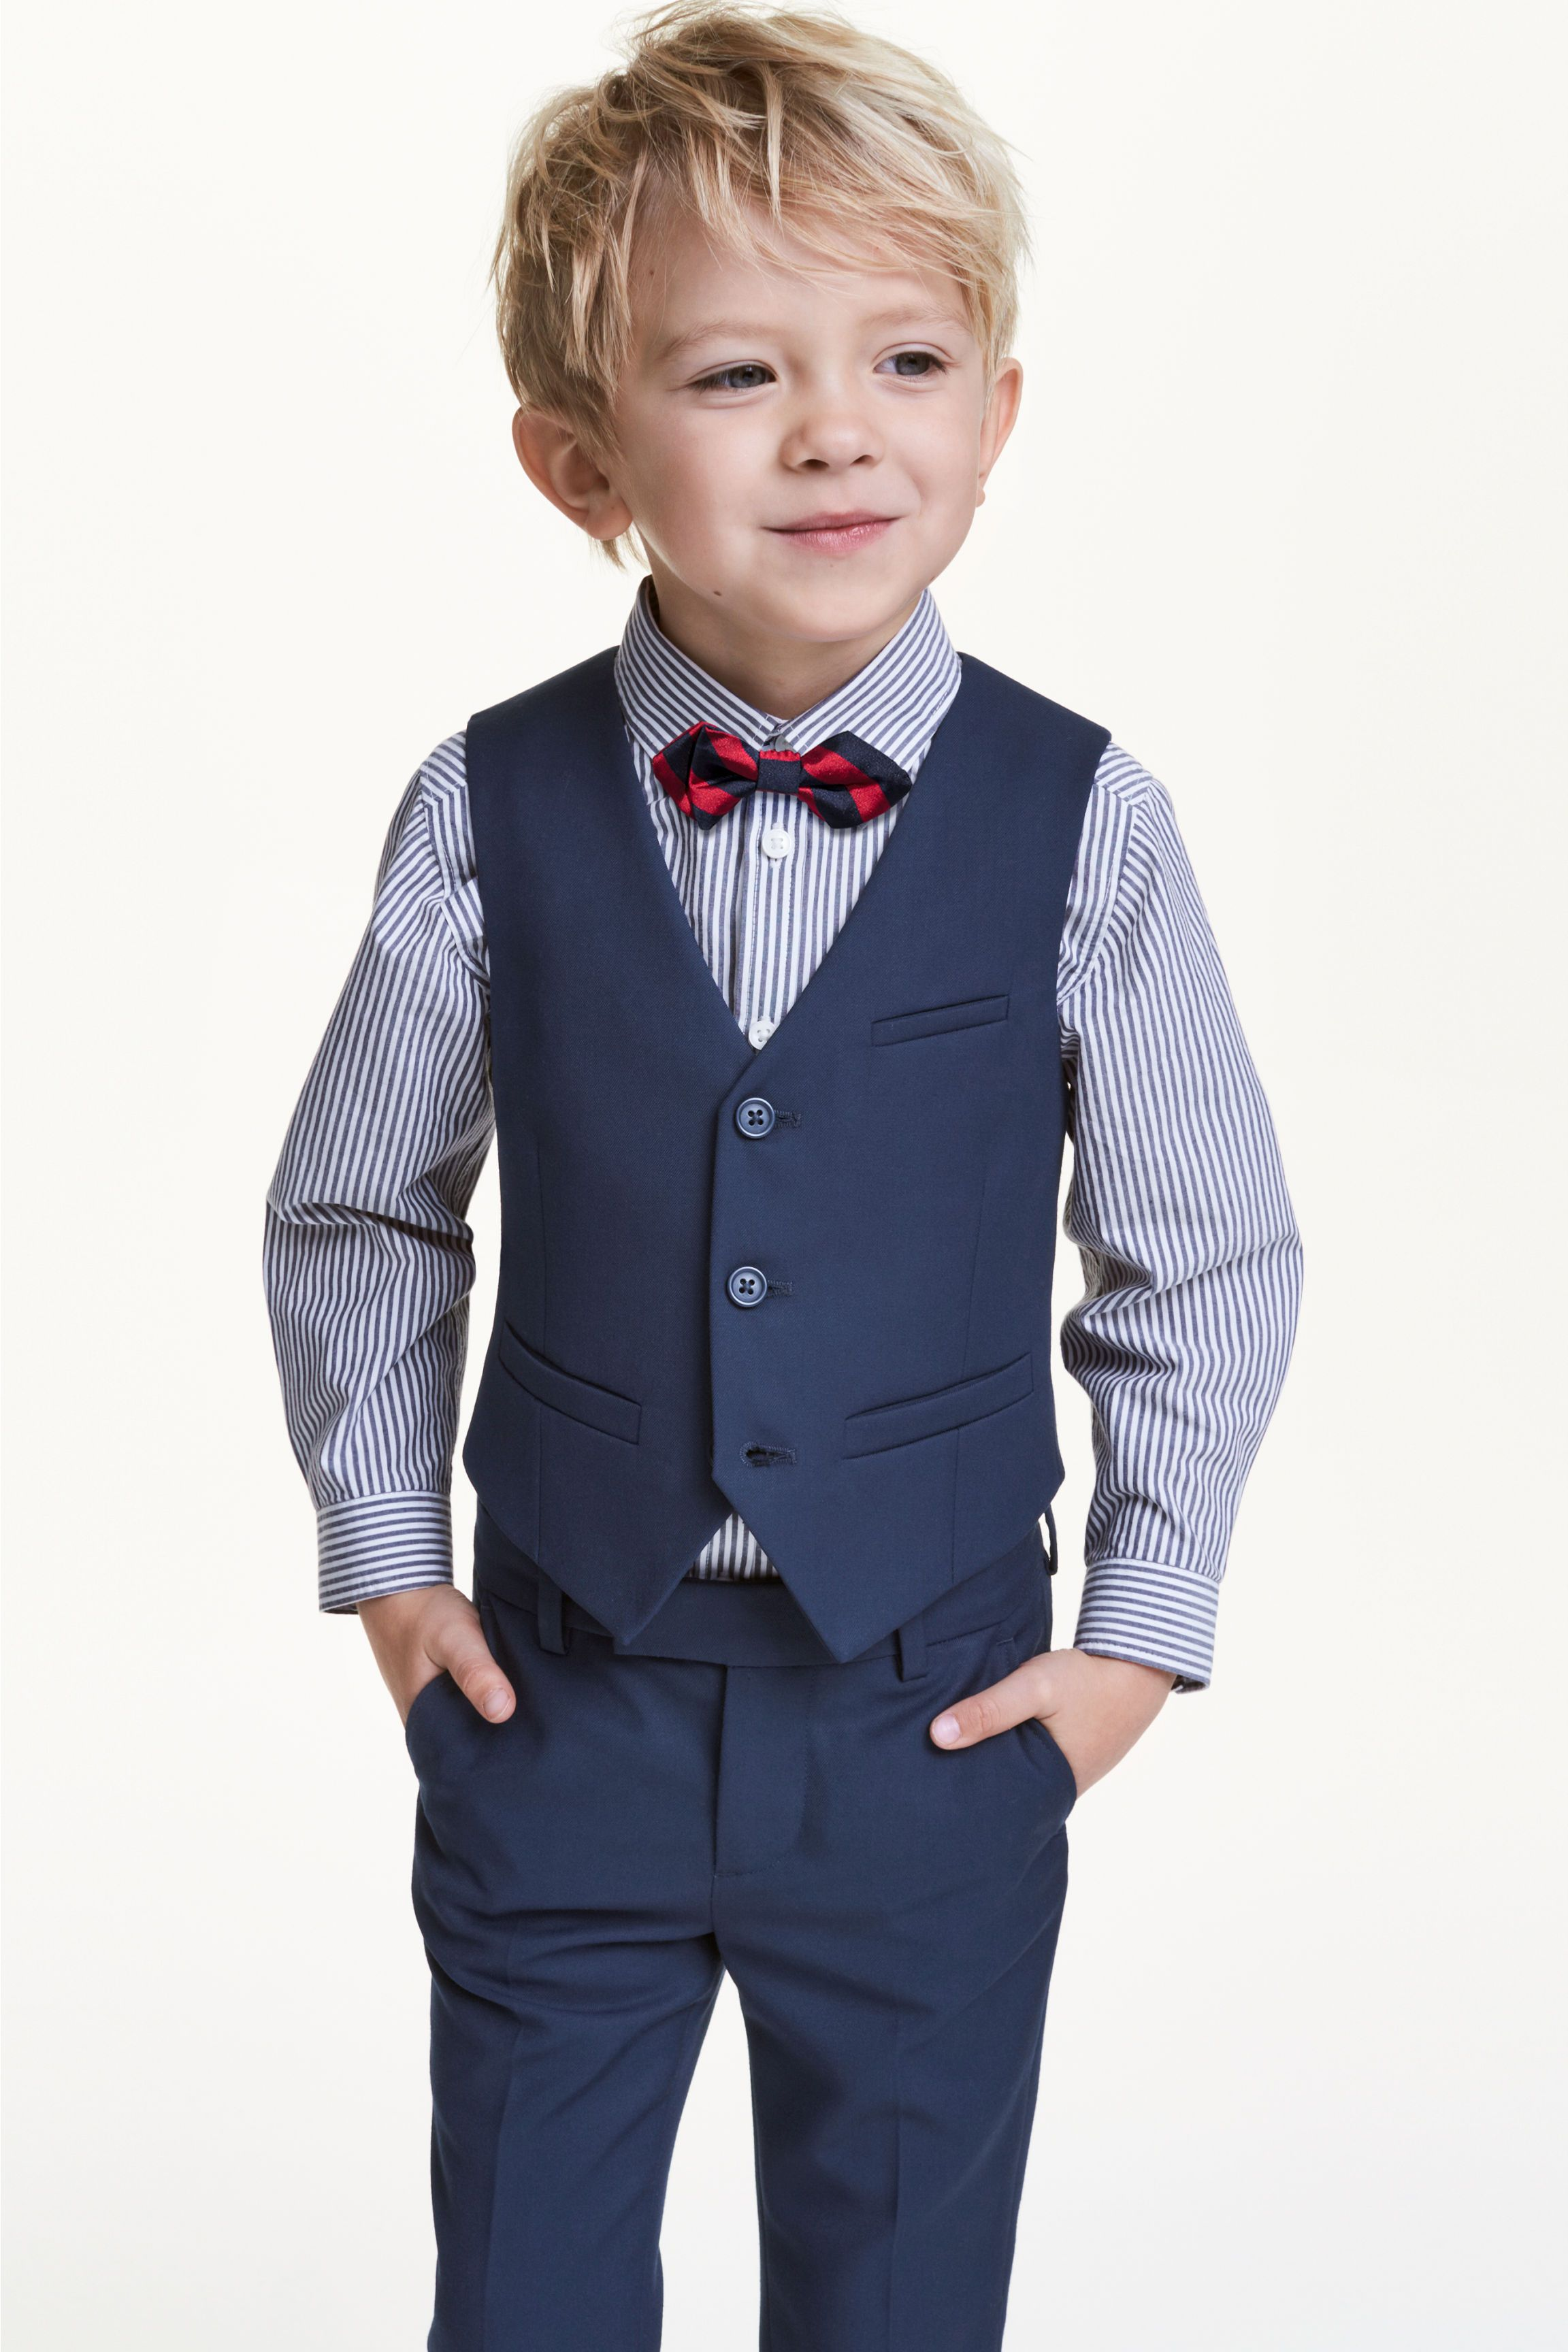 Panciotto Kids Outfit Pinterest